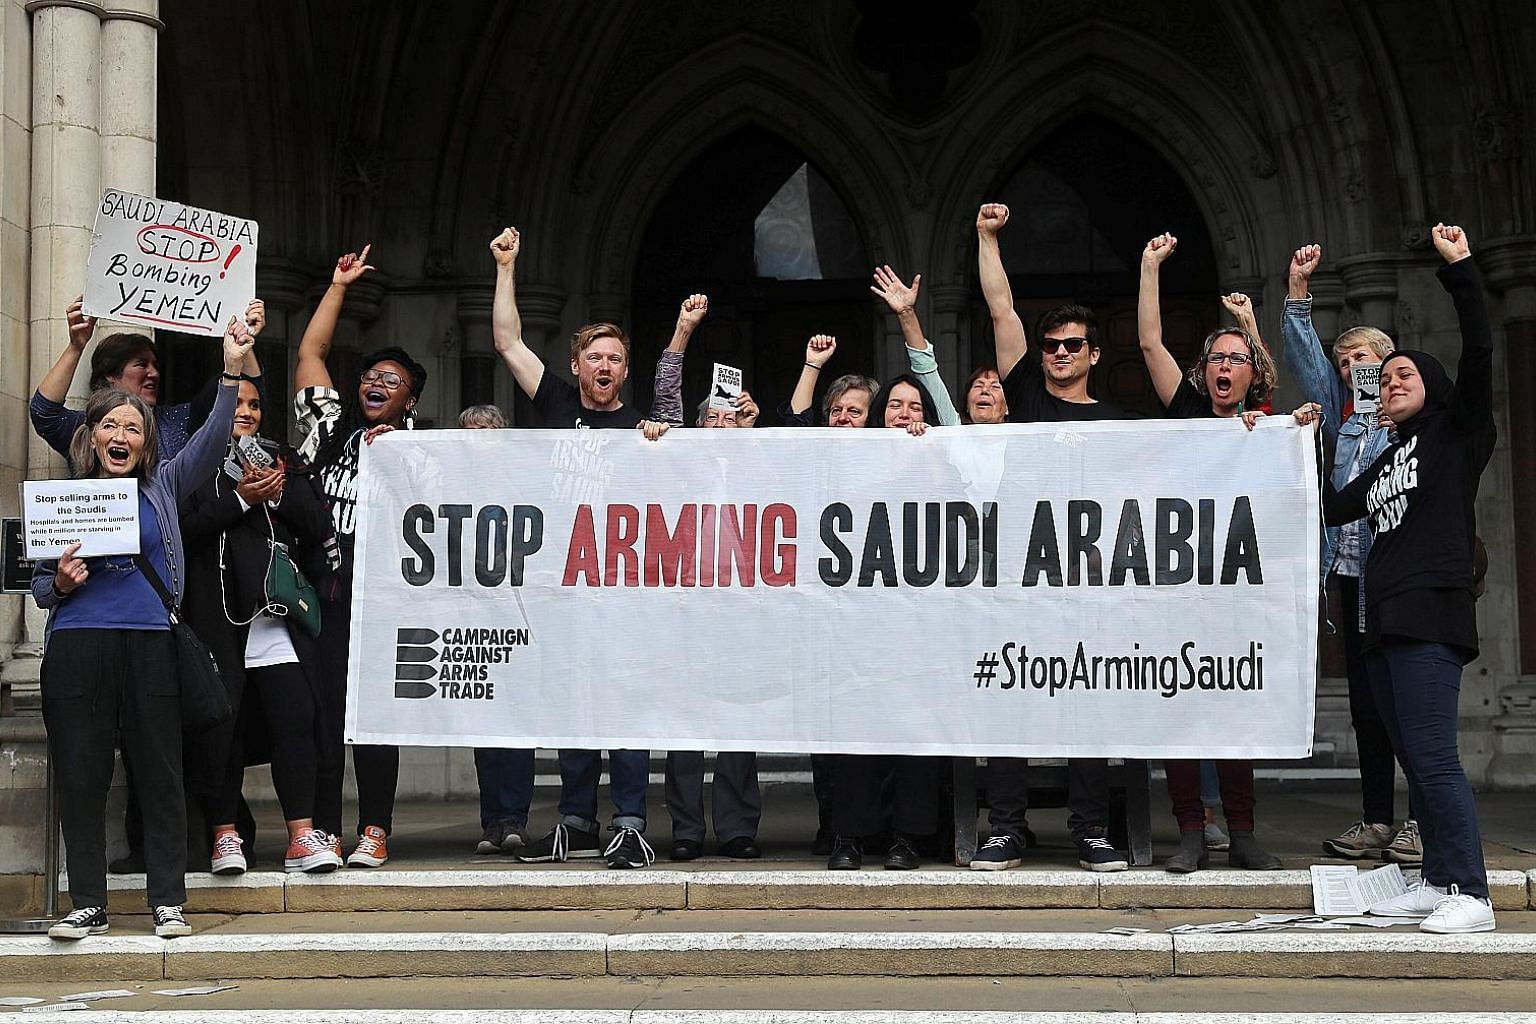 Demonstrators from the Britain-based Campaign Against Arms Trade reacting to yesterday's judgment by Britain's Court of Appeal over a legal case involving the export of arms to Saudi Arabia. The British High Court had ruled in July 2017 that the arms